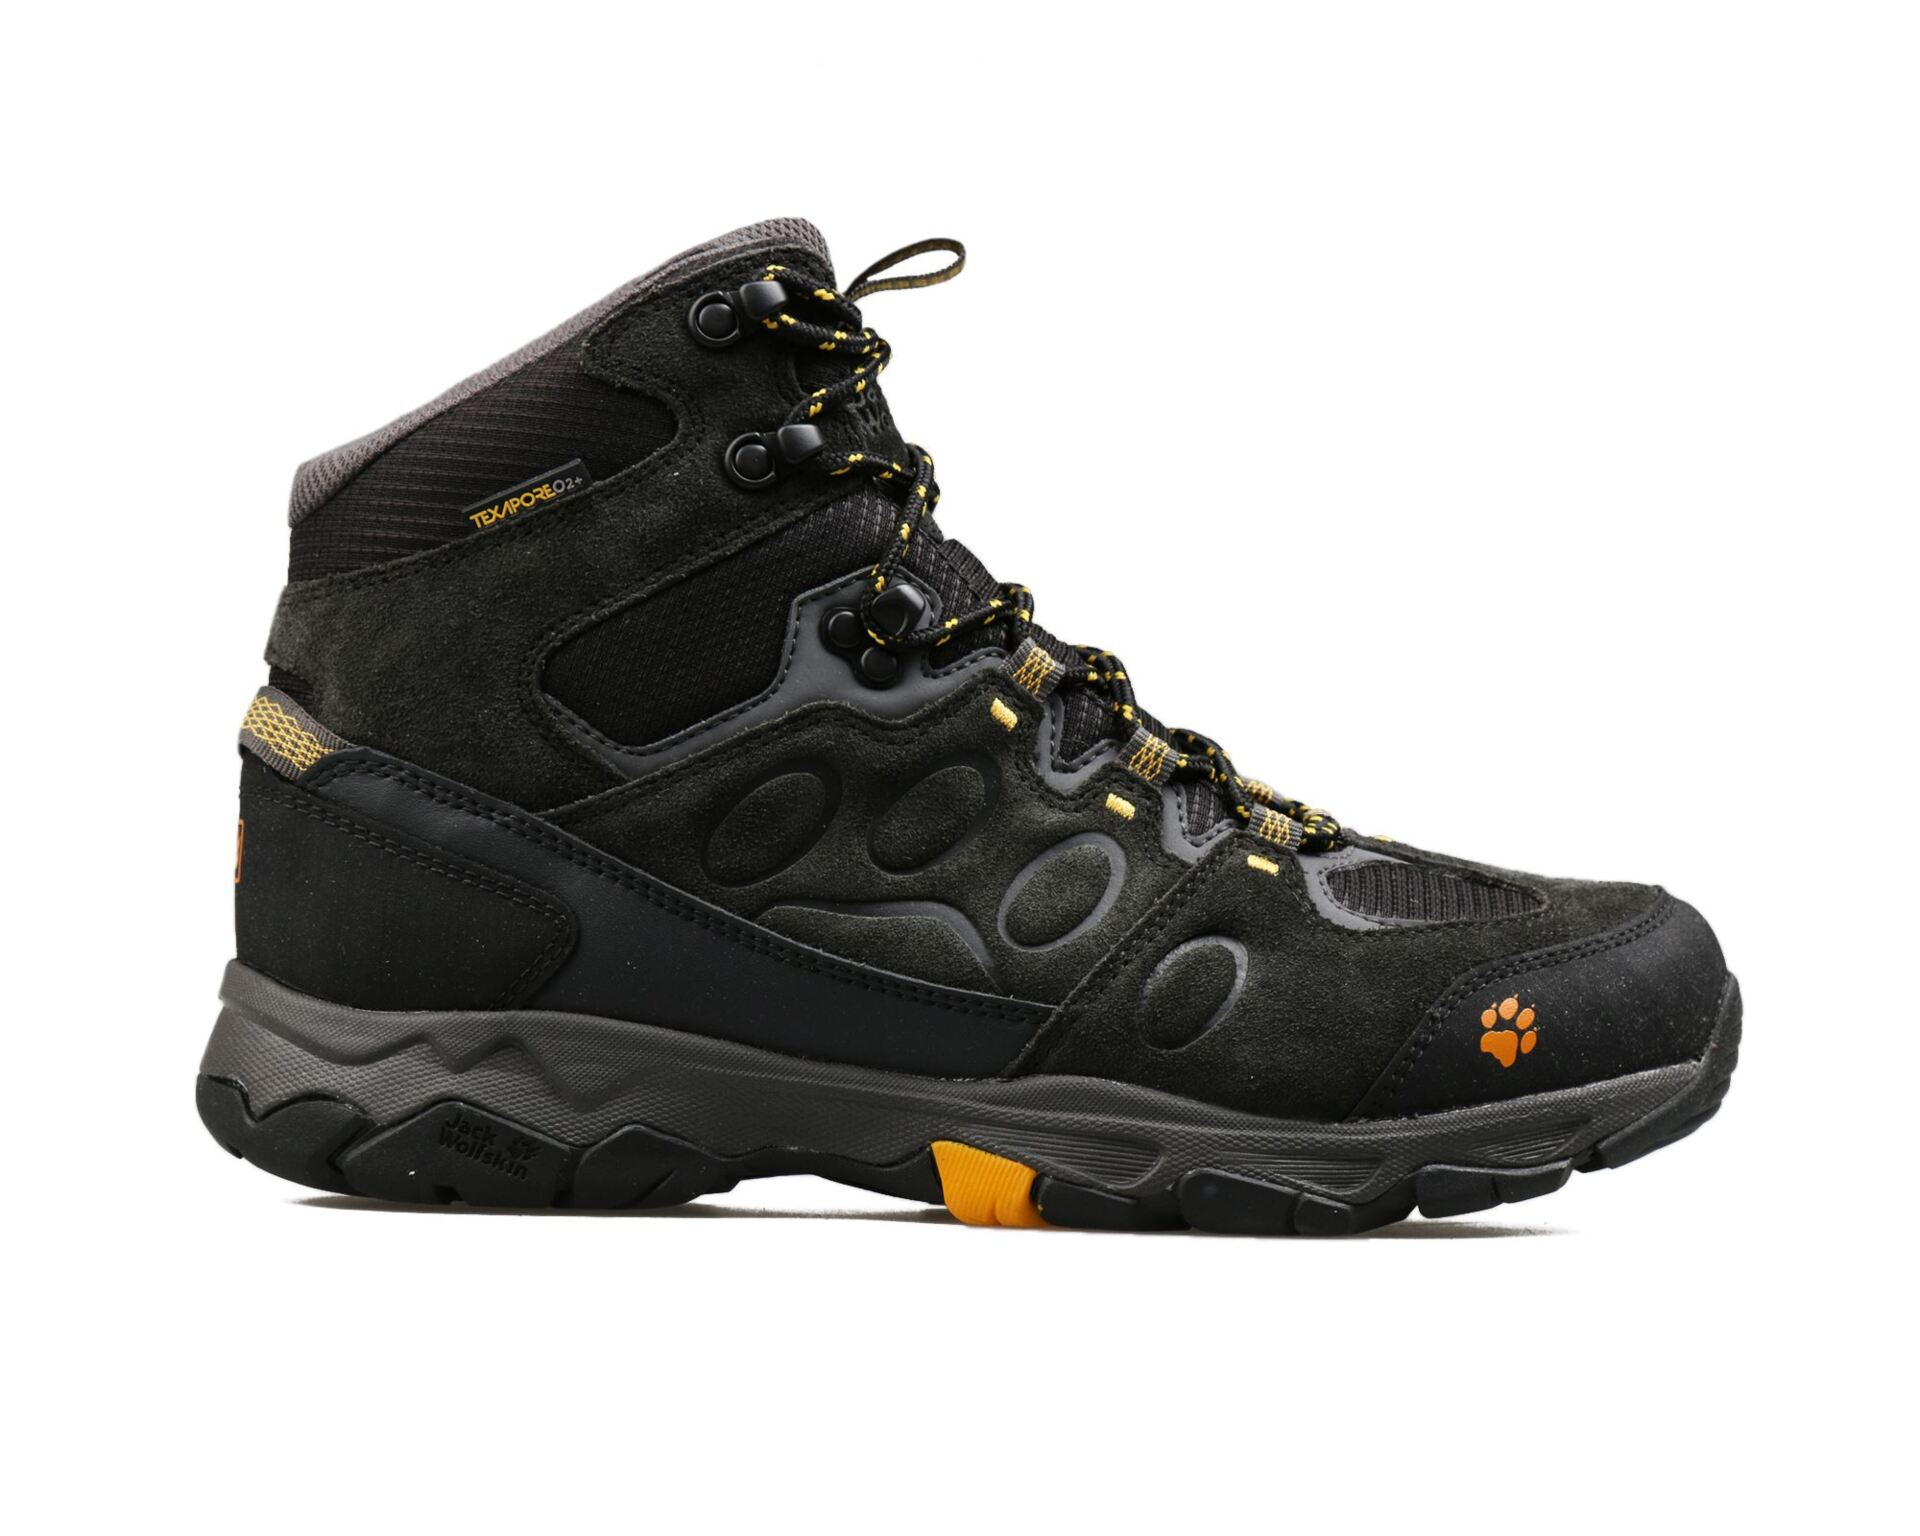 CIPELE MTN ATTACK 5 TEXAPORE JACK WOLFSKIN